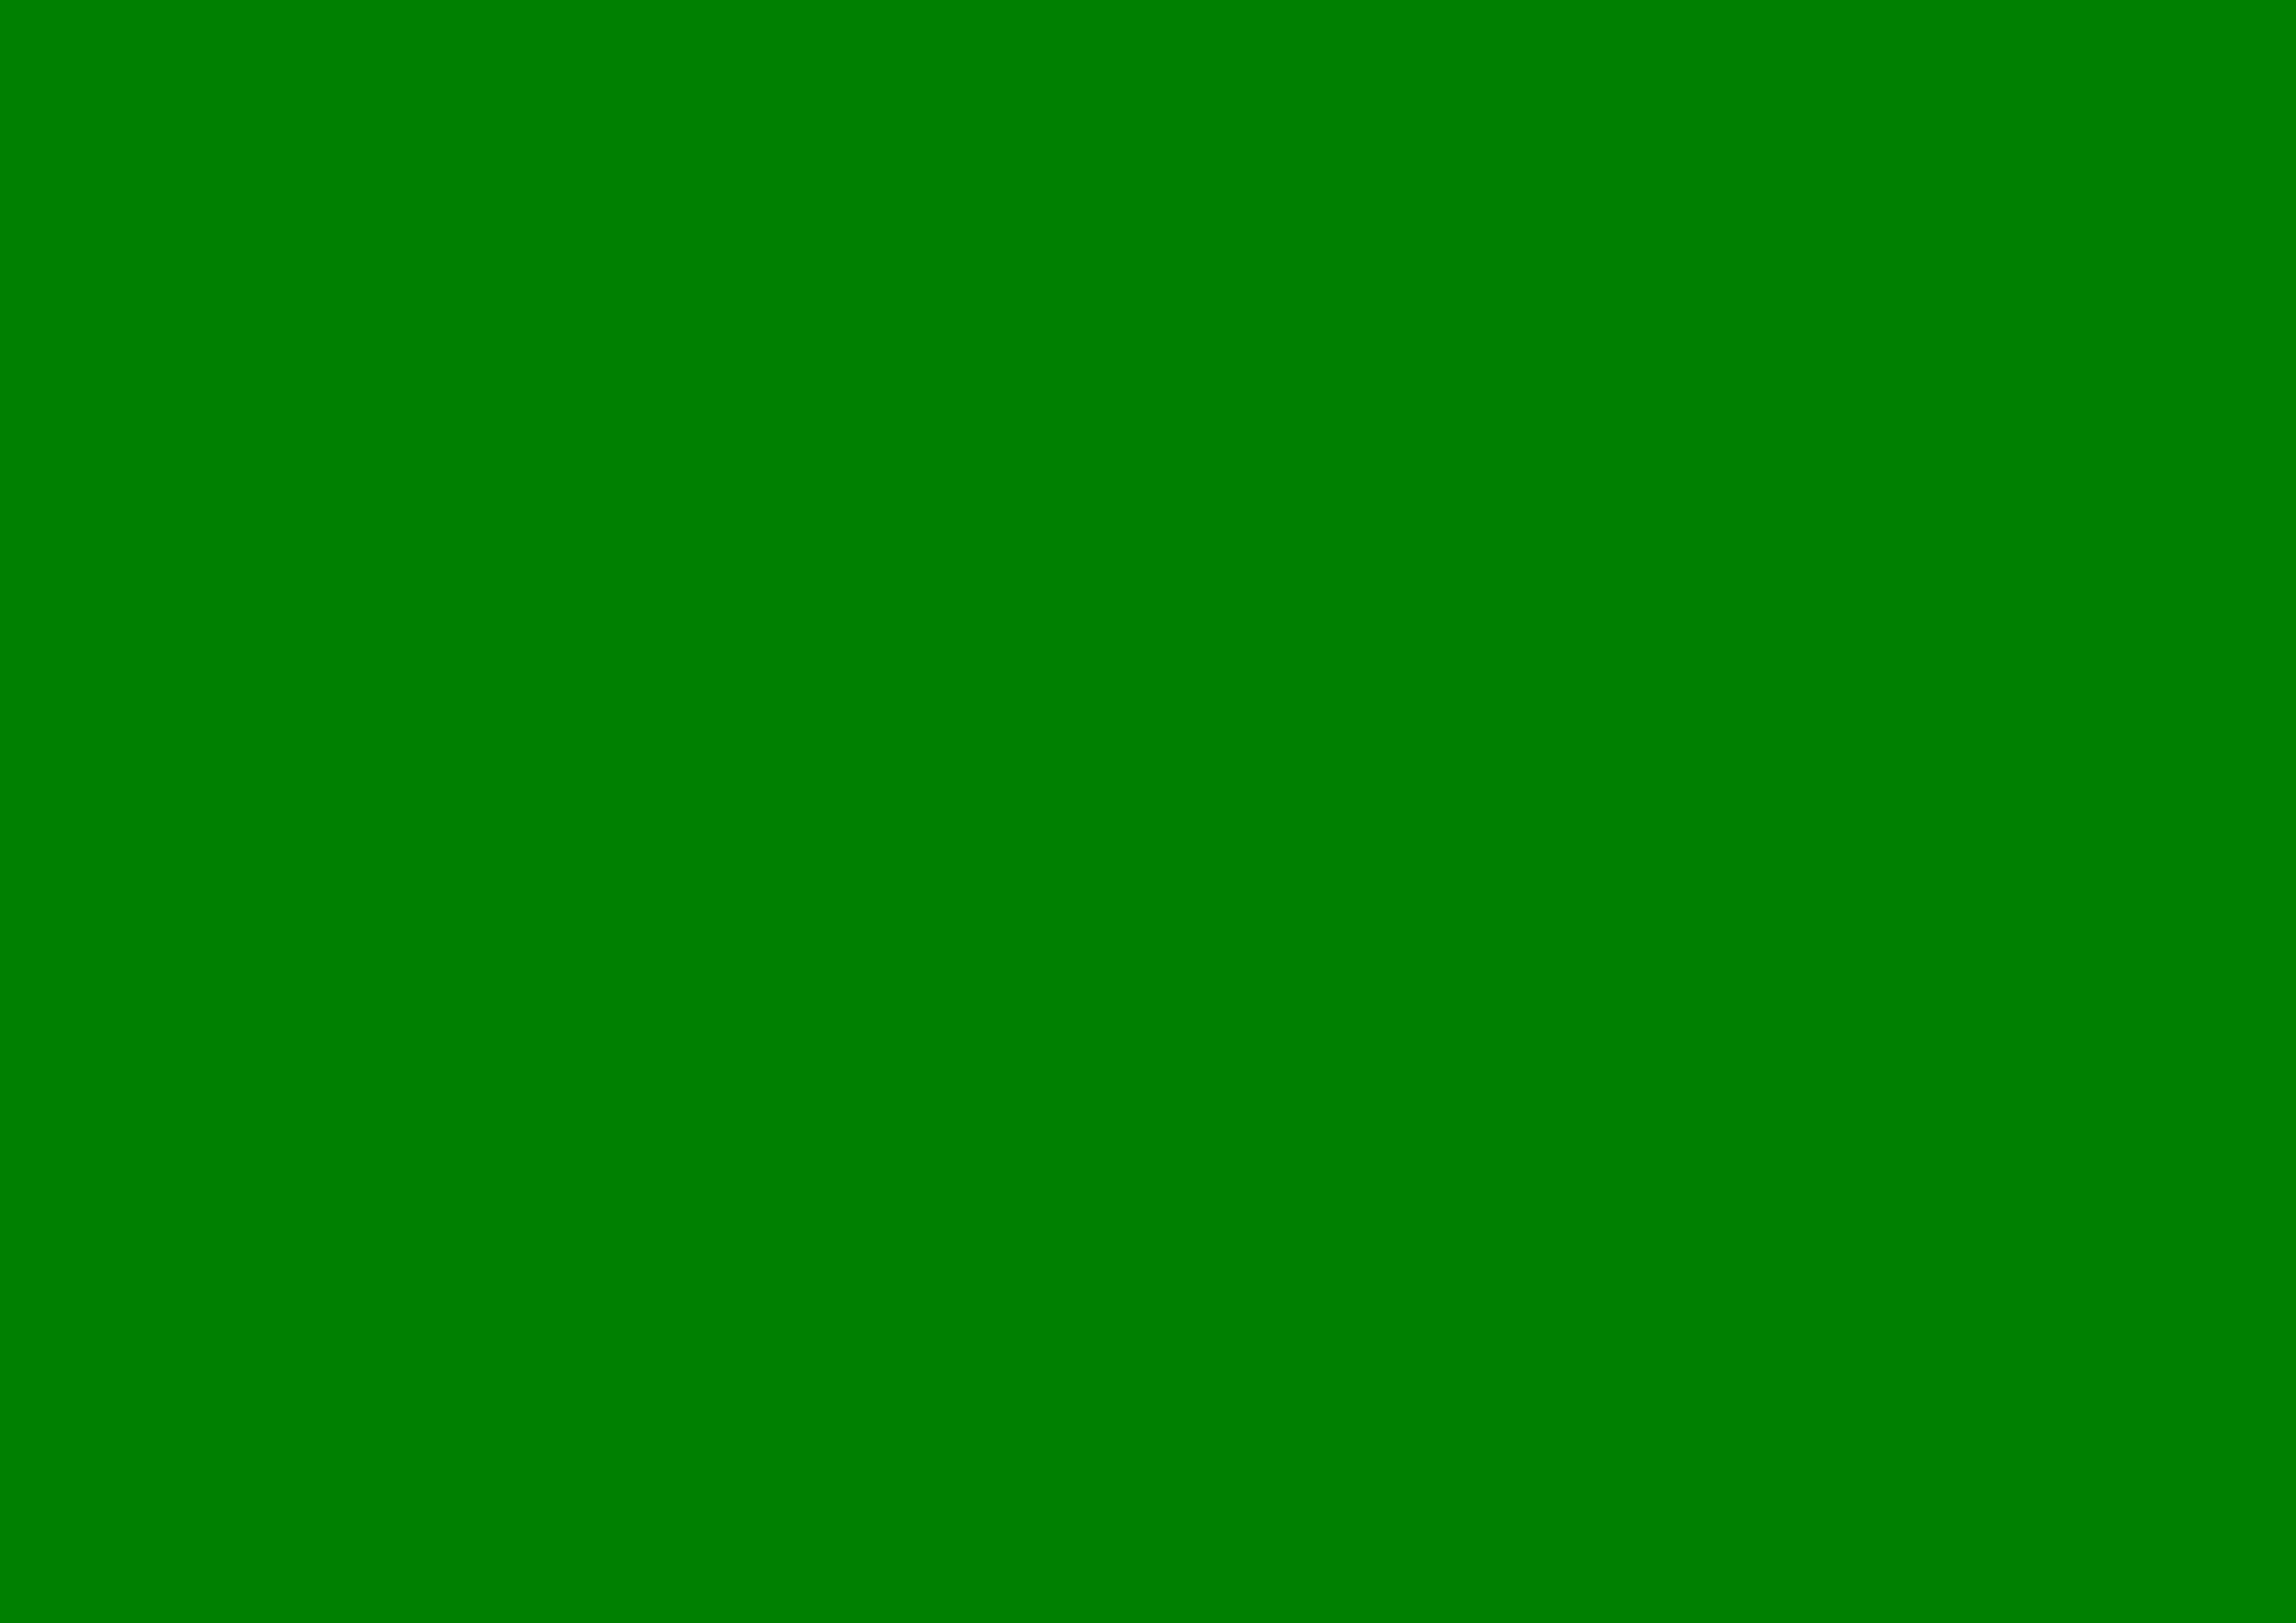 3508x2480 Office Green Solid Color Background